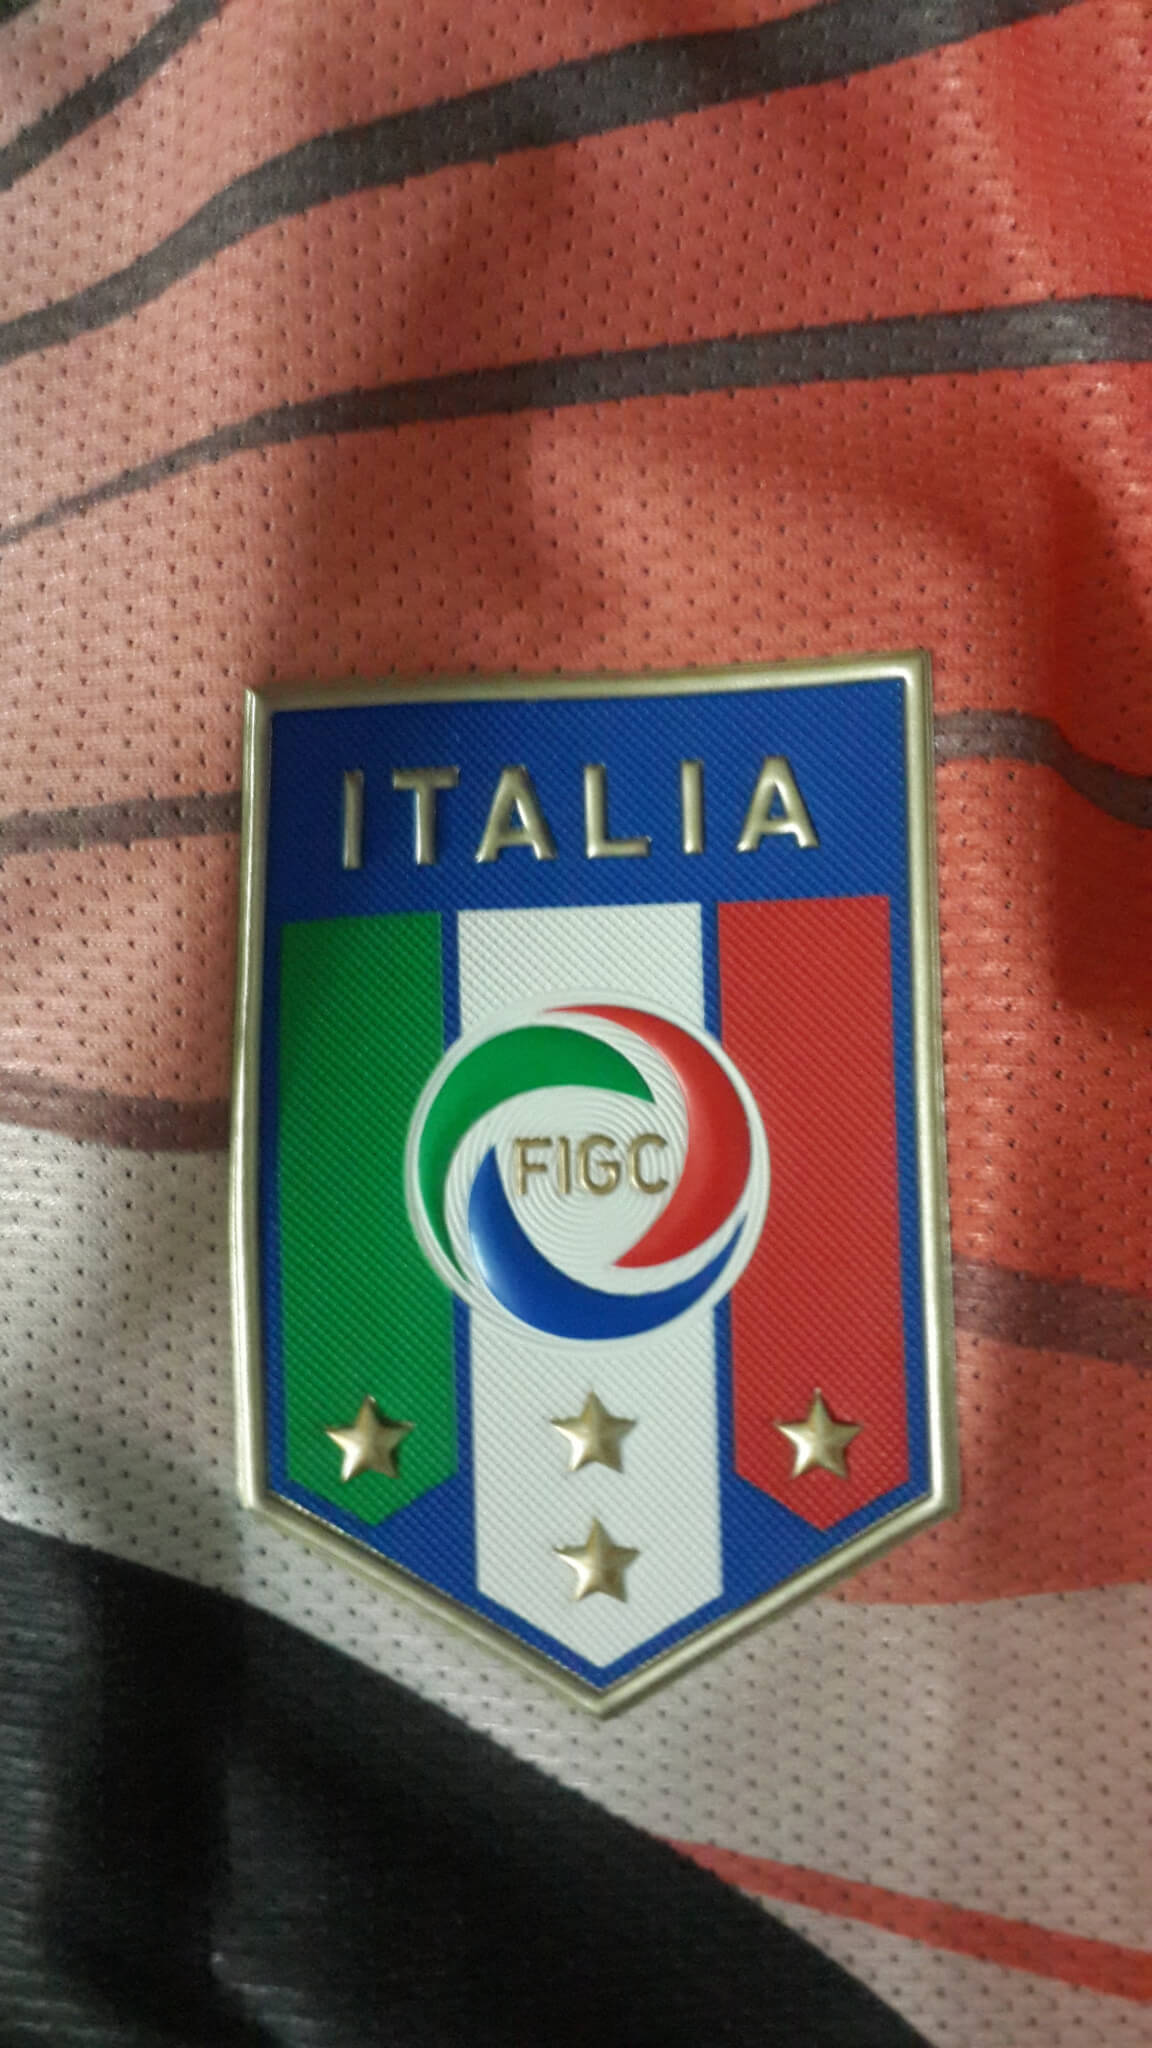 5412219894d A Gianluigi Buffon Game-Used Unwashed  1 Italy Away Shirt Mexico vs Italy (2 -1) 2010 World Cup Friendly Match 06 03 2010